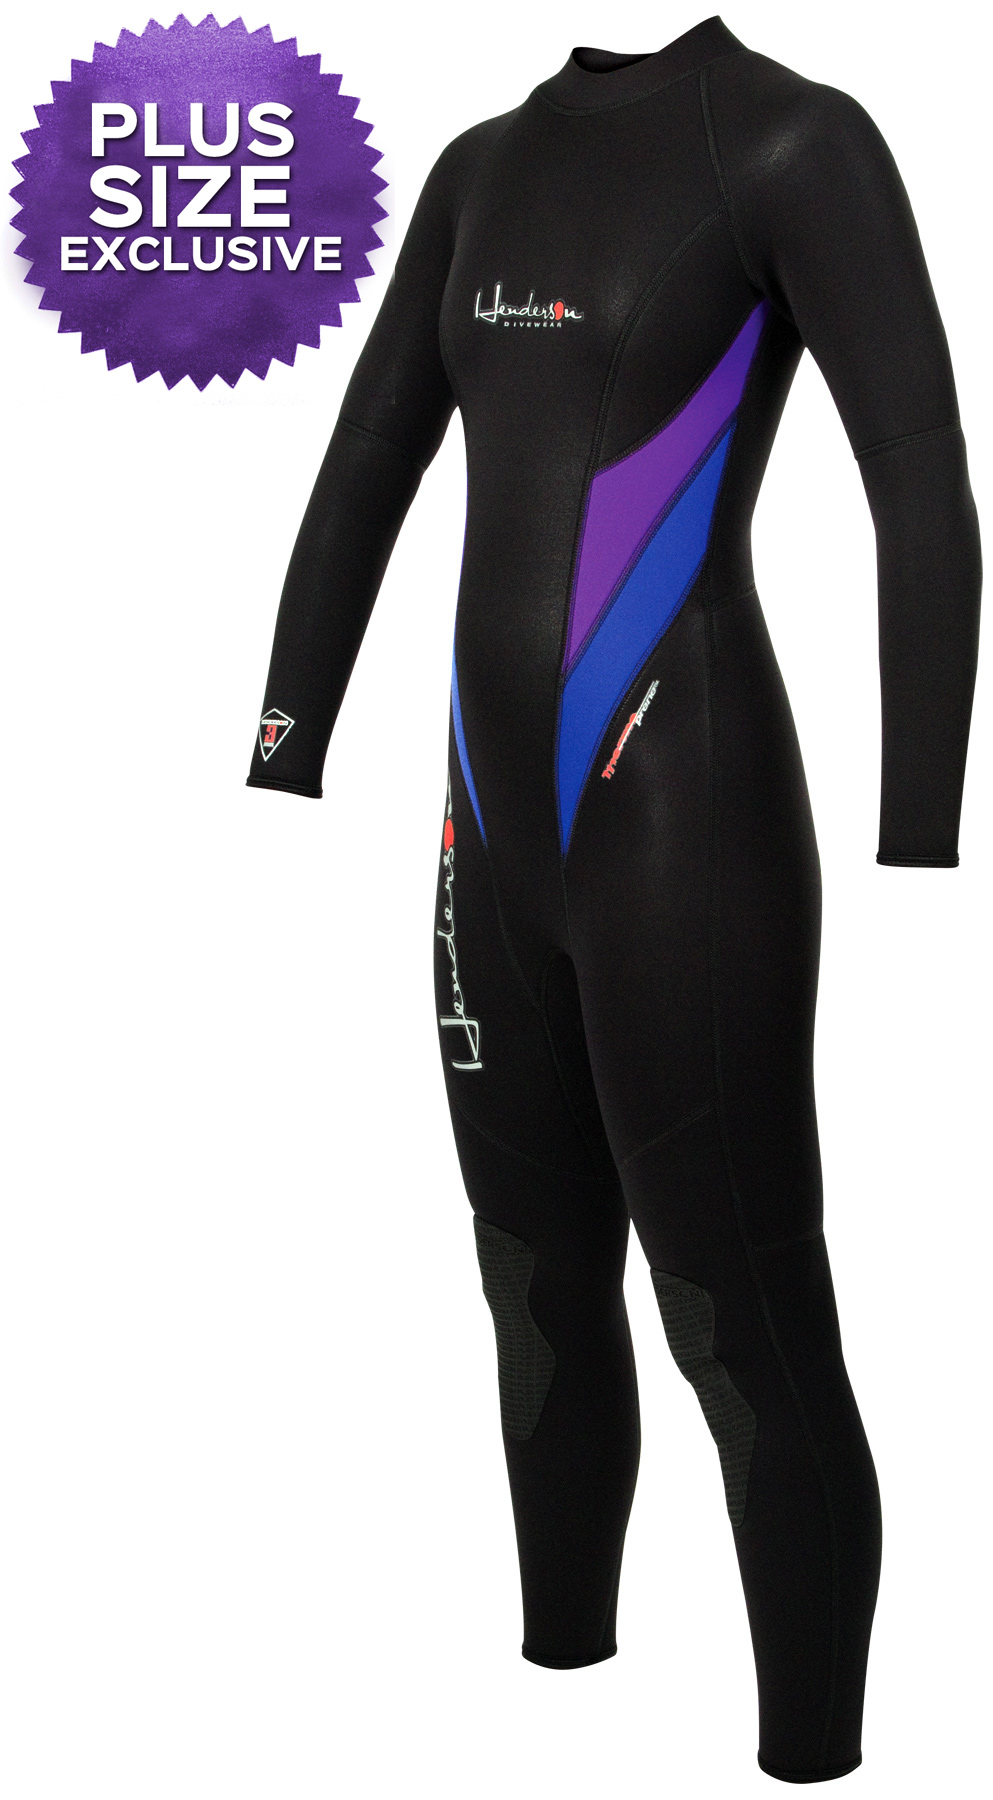 Women's PLUS SIZE Wetsuit Thermoprene 3mm Women's Purple/Black